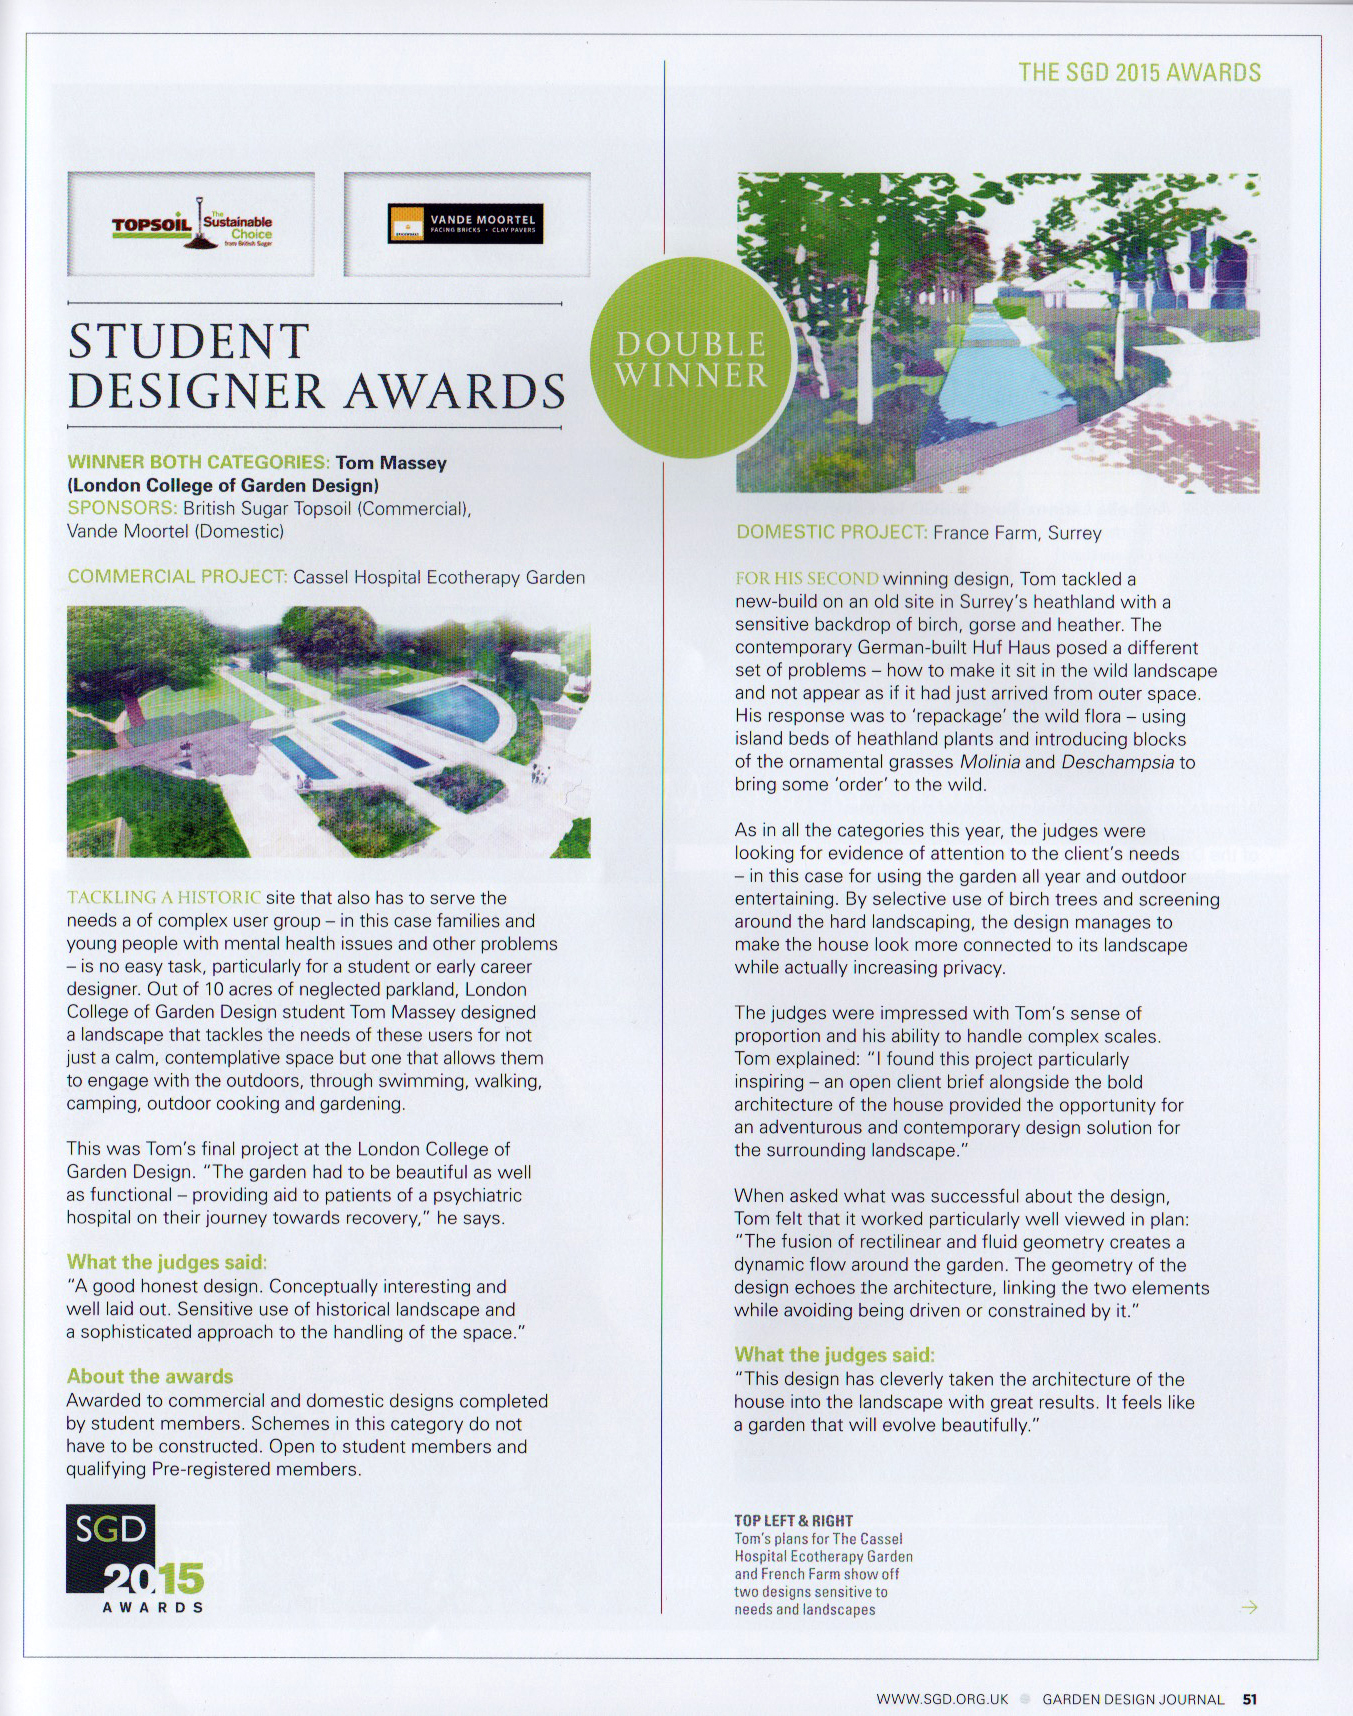 SGD Garde Design Journal Article